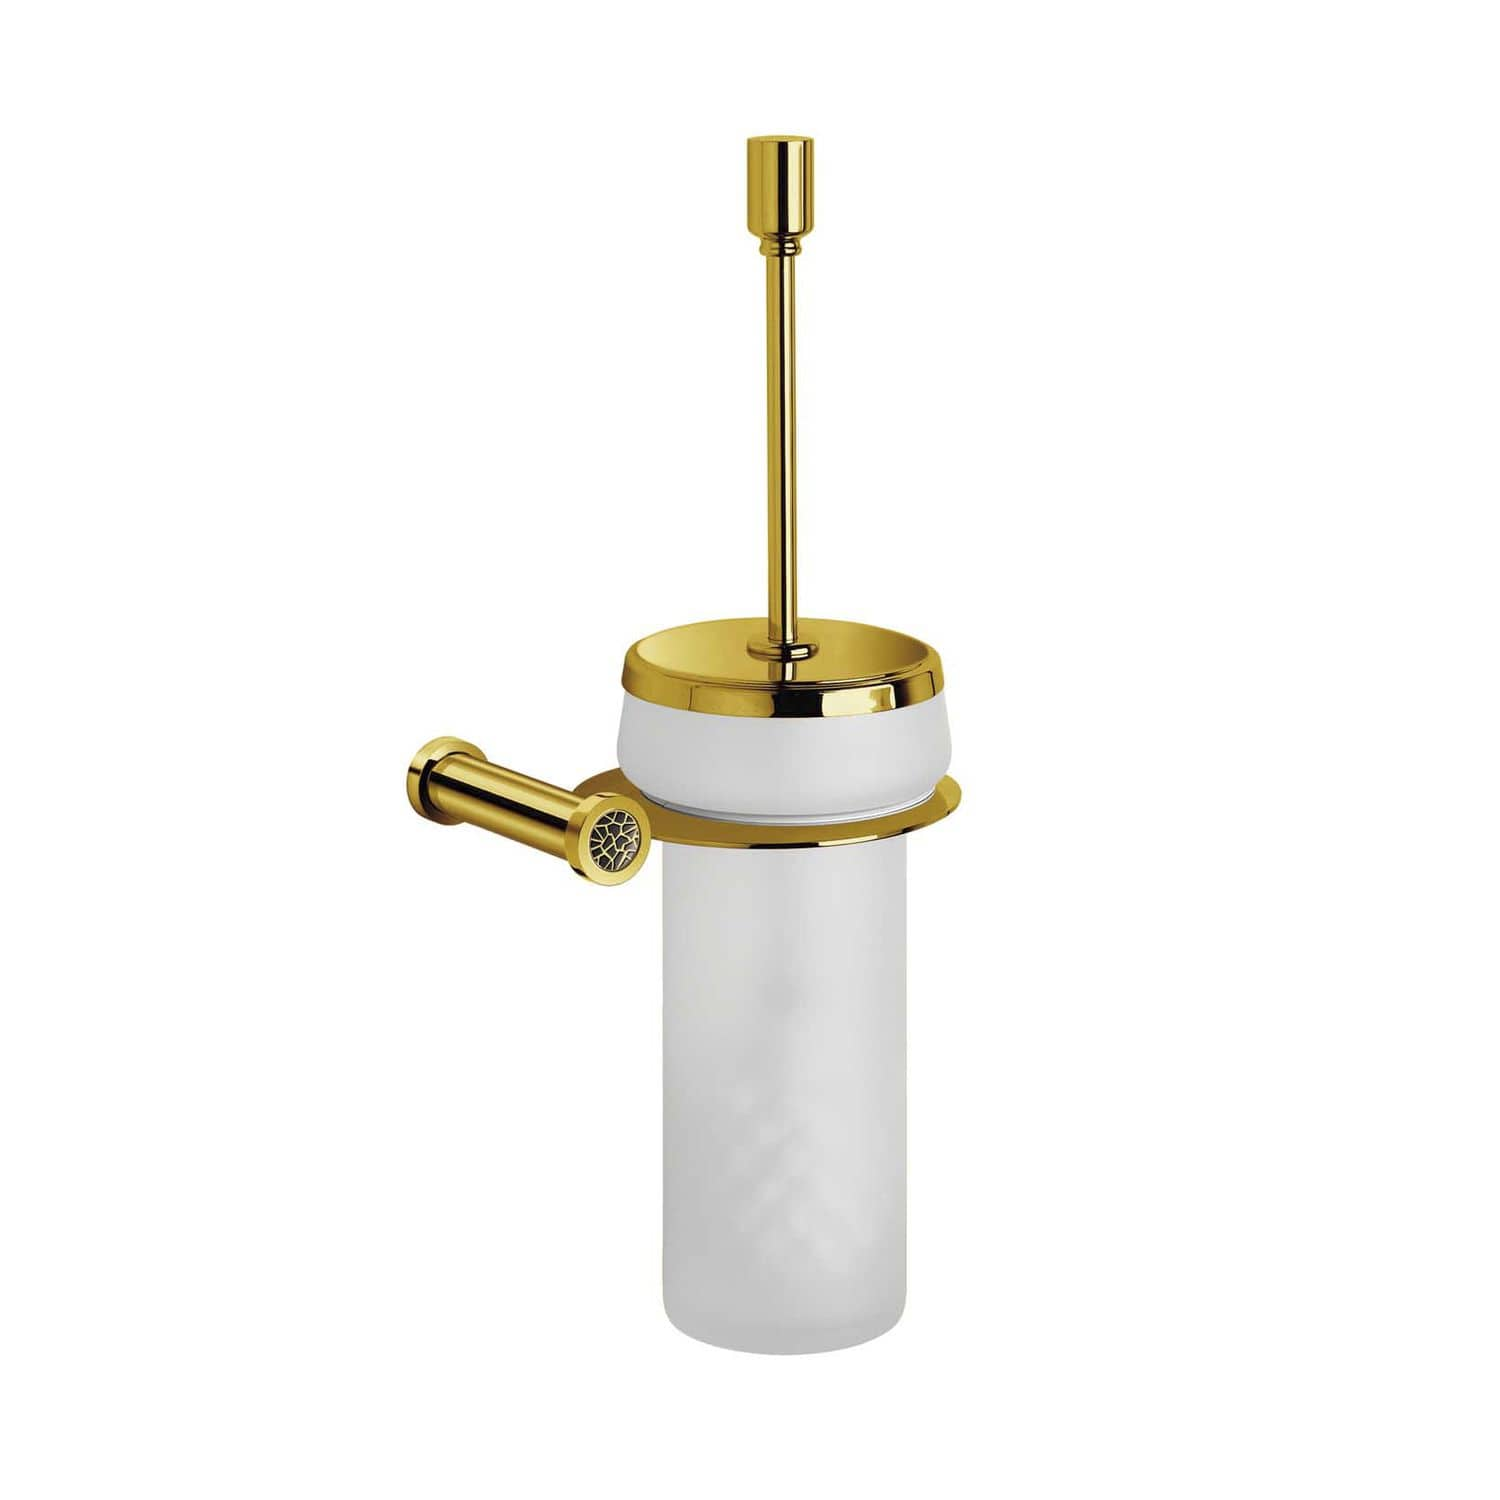 Chrome-plated brass toilet brush / gold-plated brass / Swarovski ...